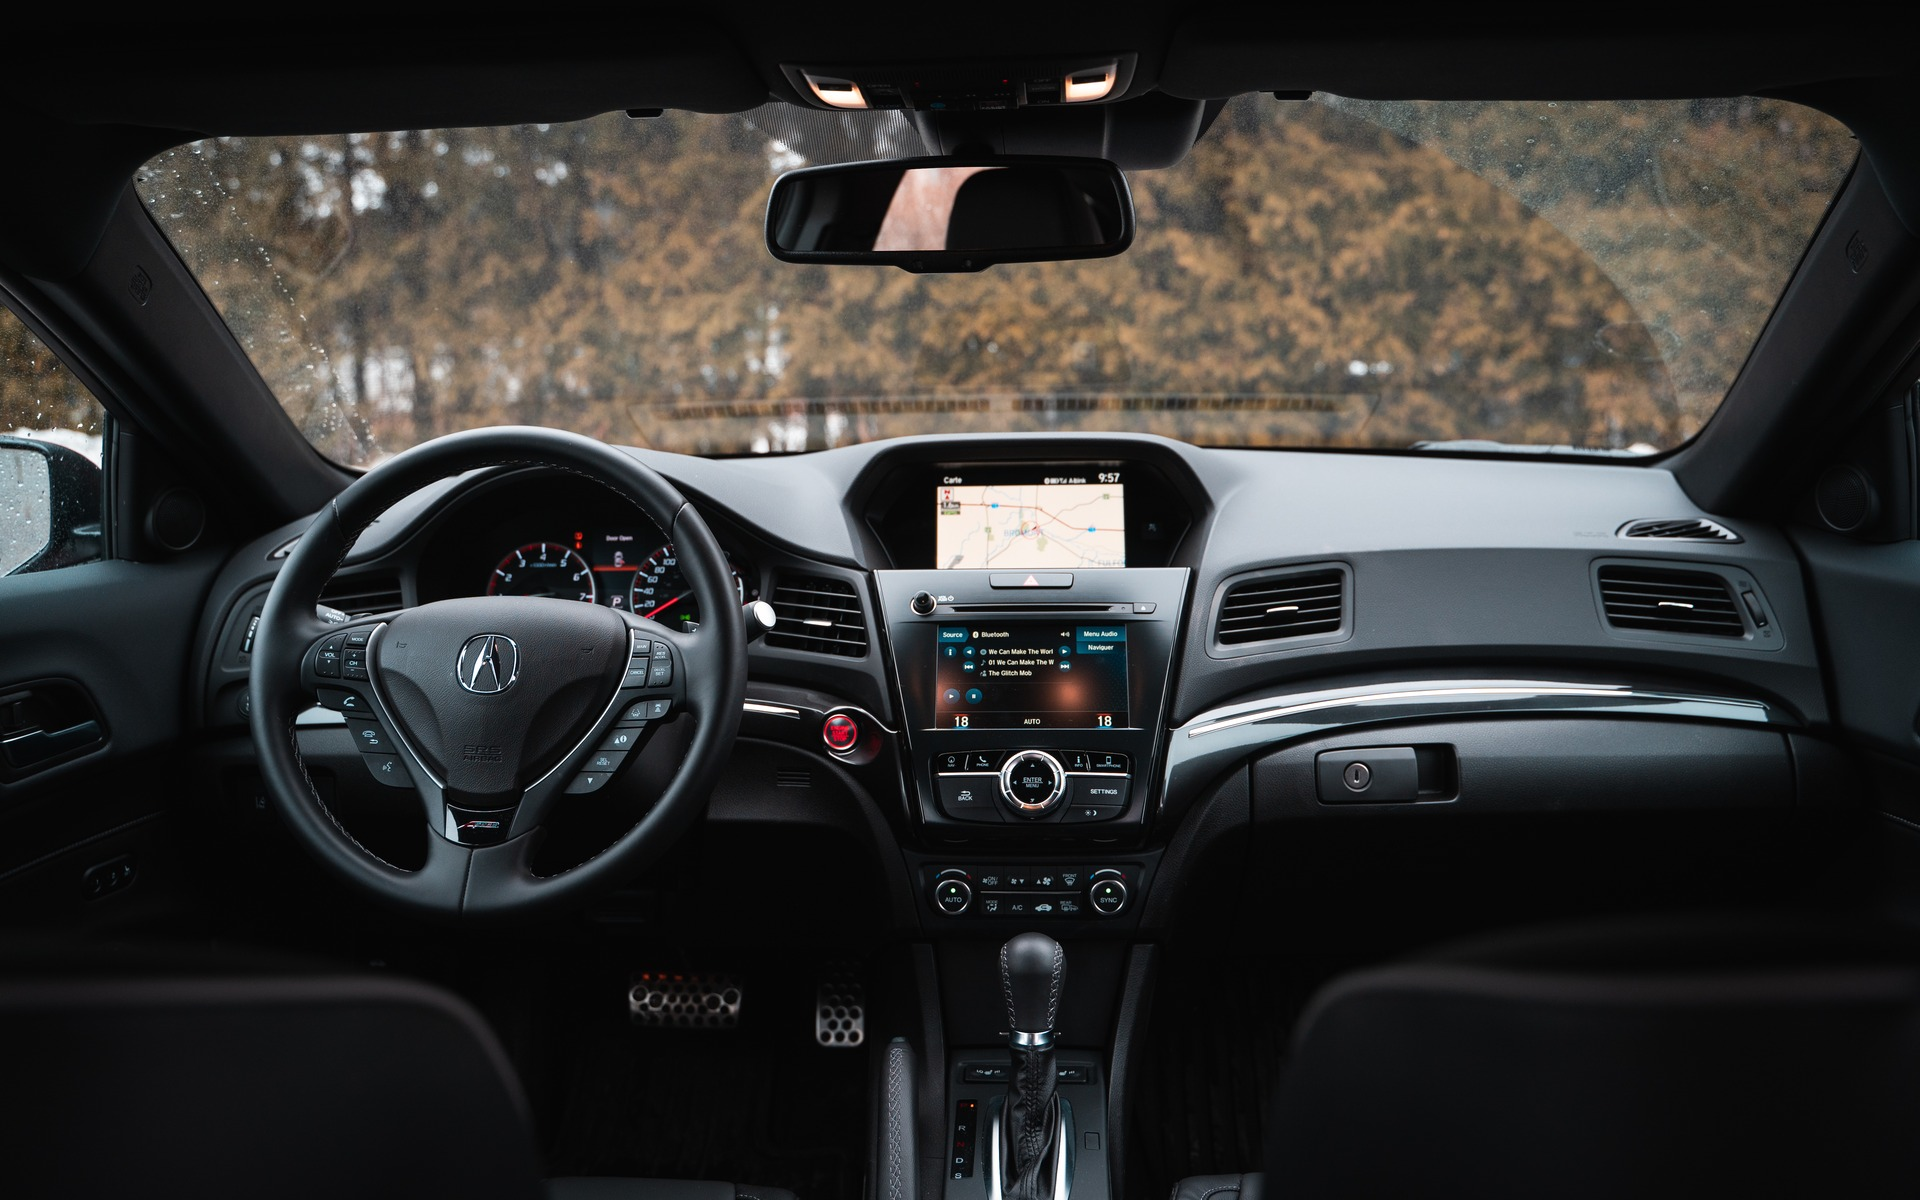 2019 Acura ILX: Recycling Done Well - The Car Guide